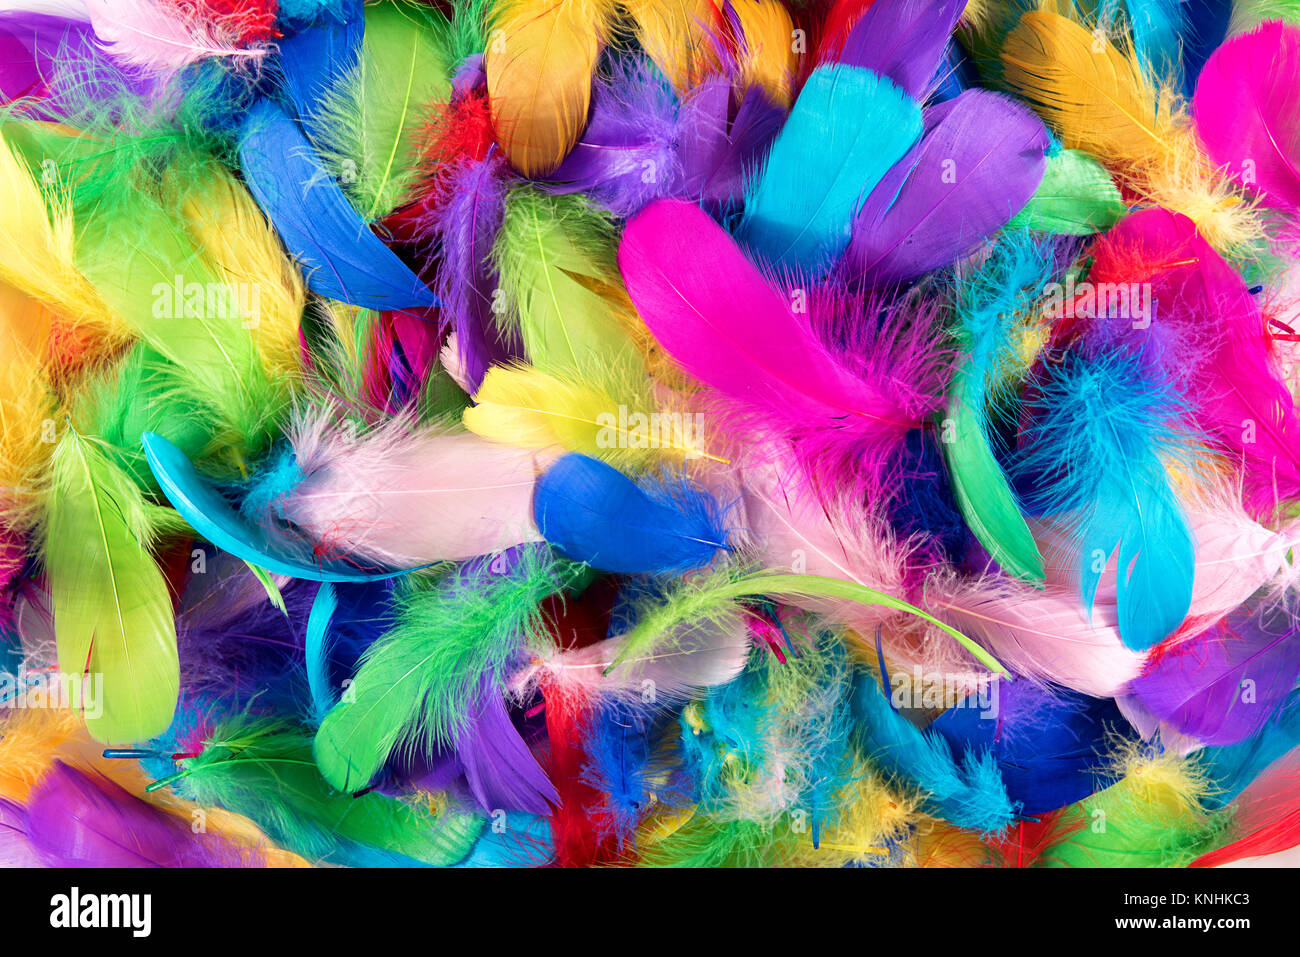 Background texture of brightly colored dyed bird feathers in the colors of the rainbow or spectrum in a random pile - Stock Image